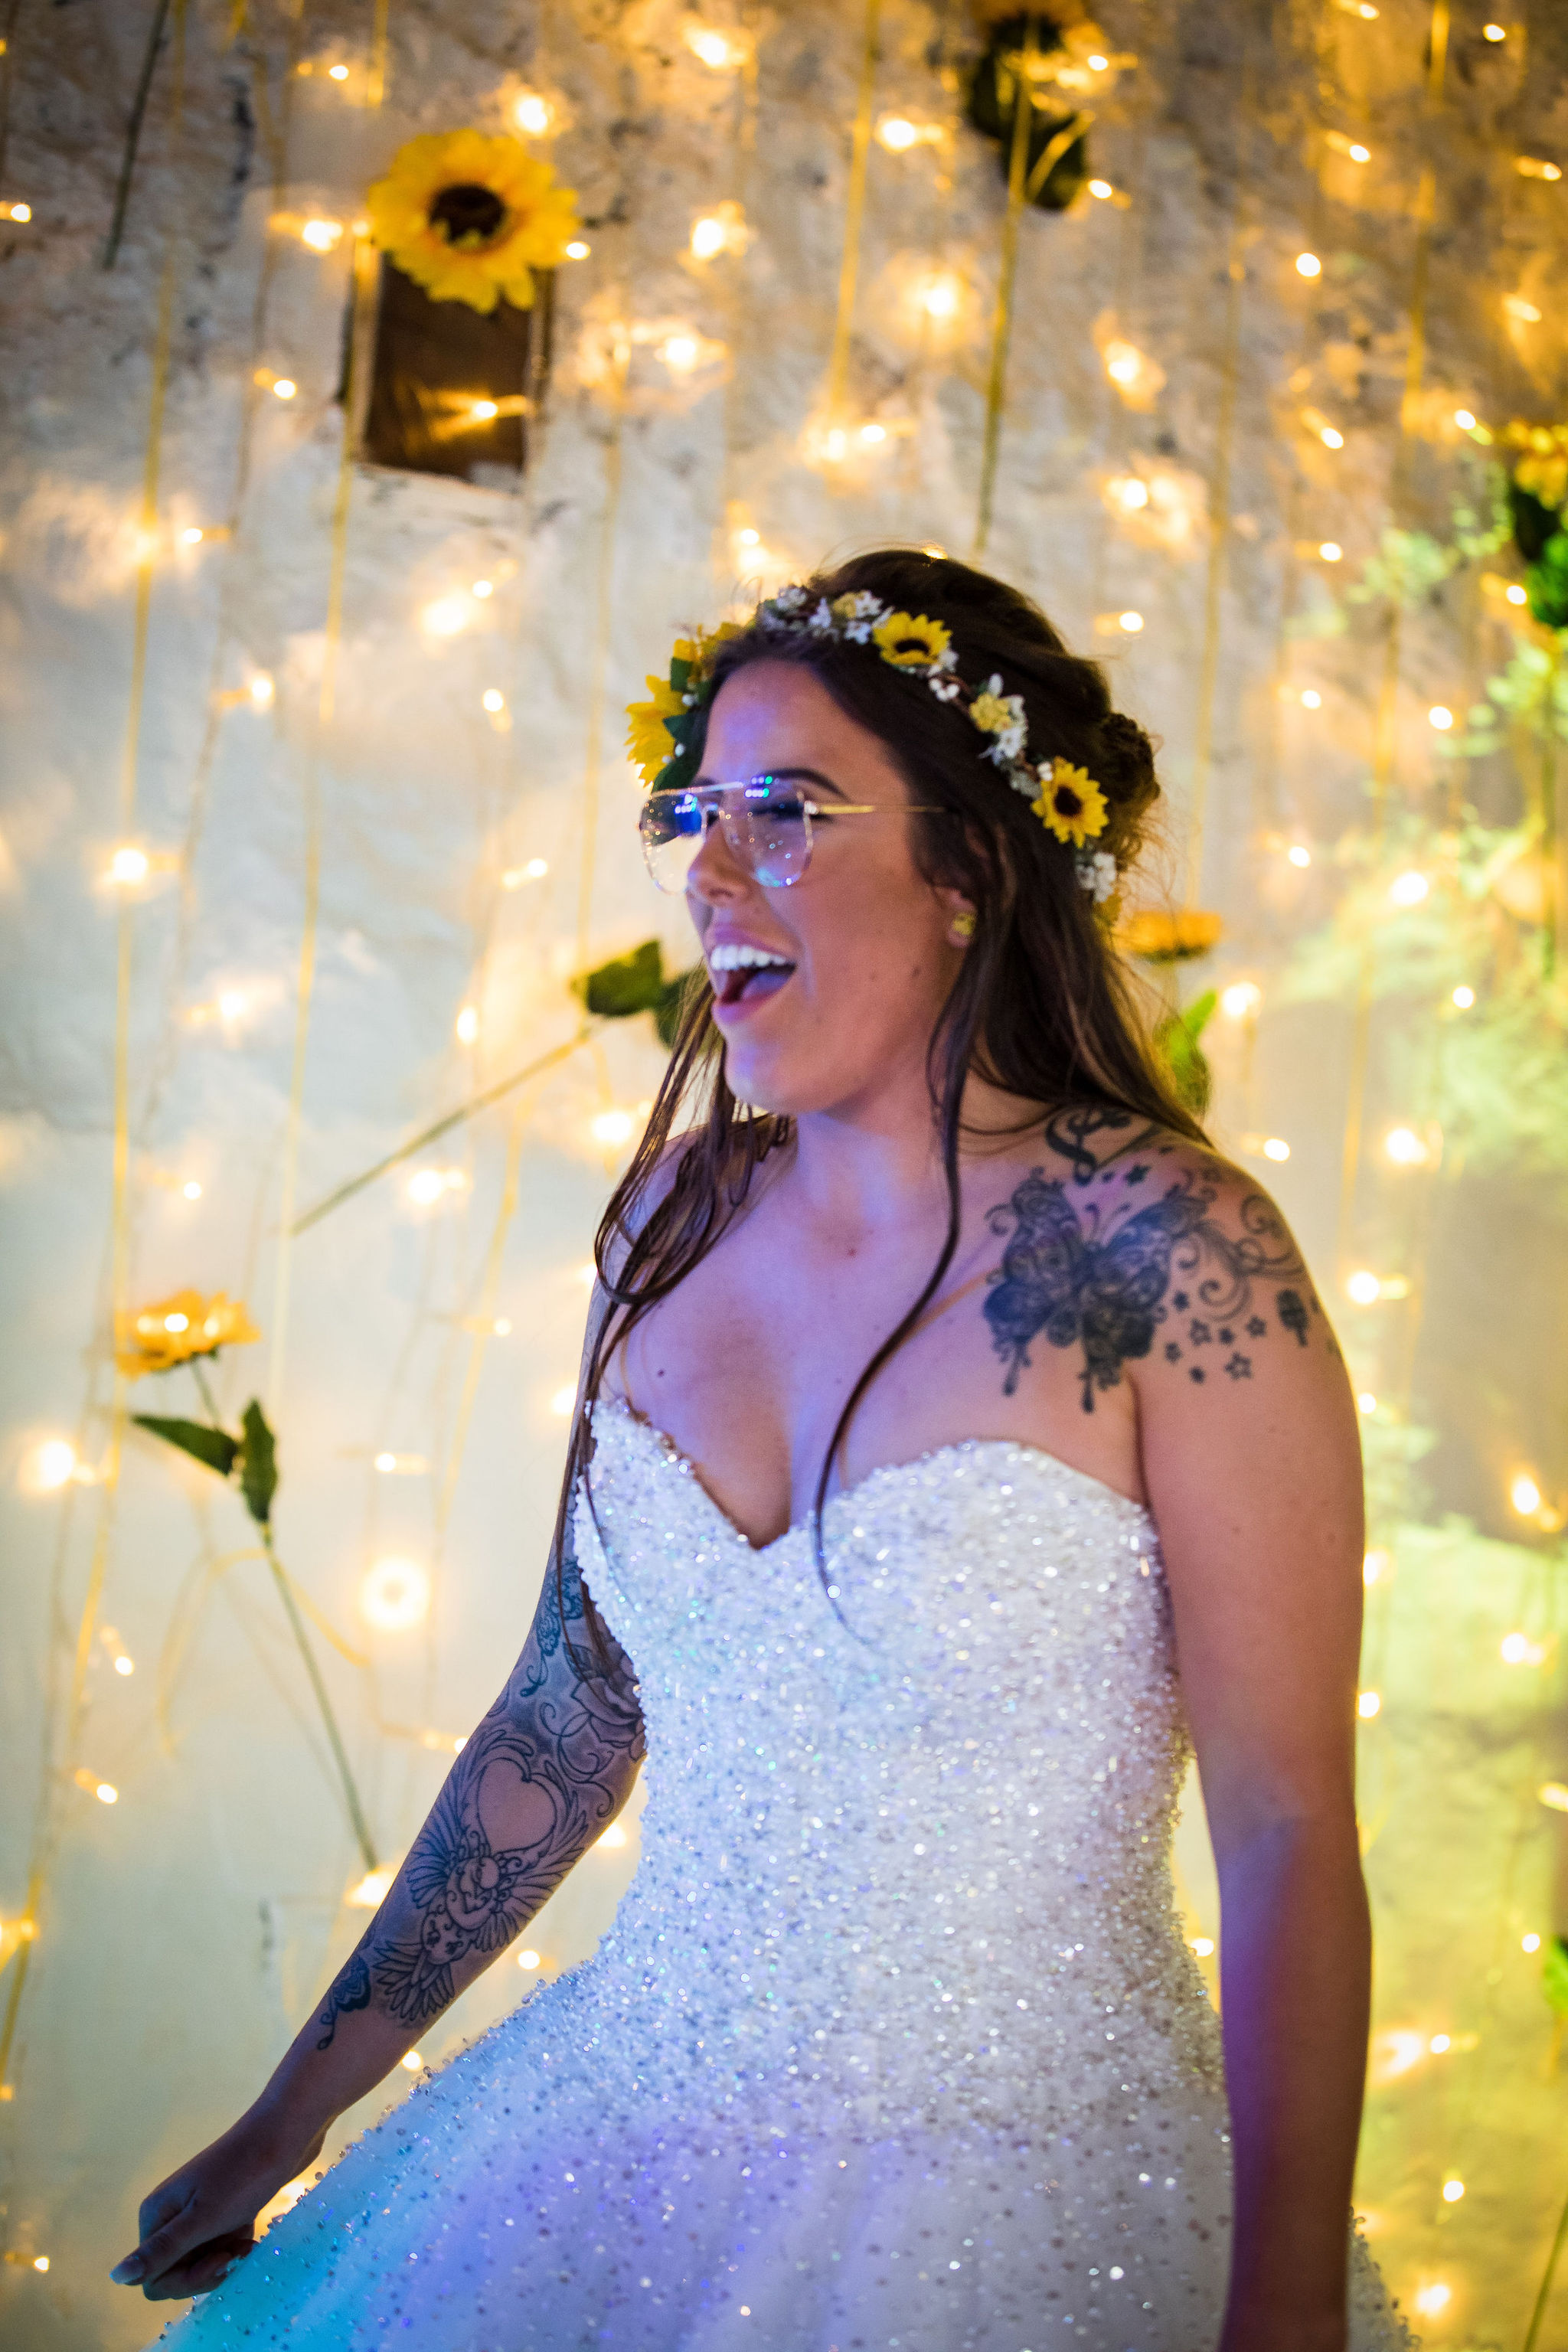 Harriet&Rhys Wedding - Magical sunflower wedding - quirky wedding with dodgems (25)